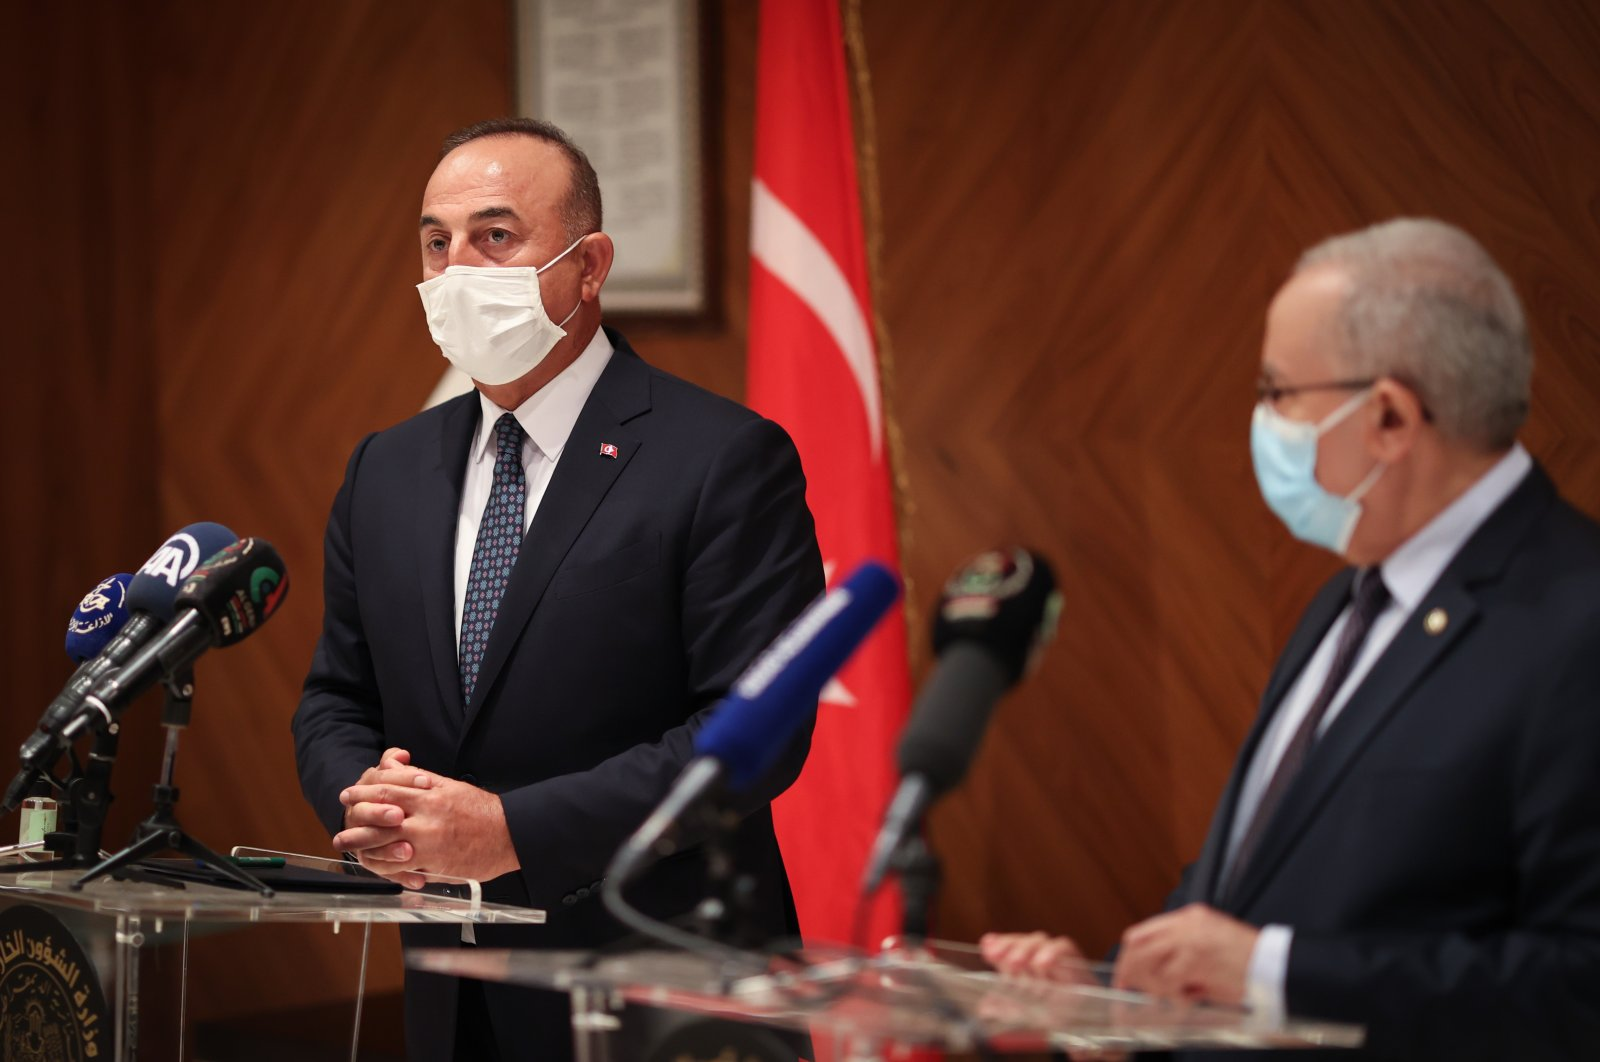 Foreign Minister Mevlüt Çavuşoğlu (L) speaks at a joint press conference with his Algerian counterpart Ramtane Lamamra in Algeria, Aug. 14, 2021. (AA Photo)